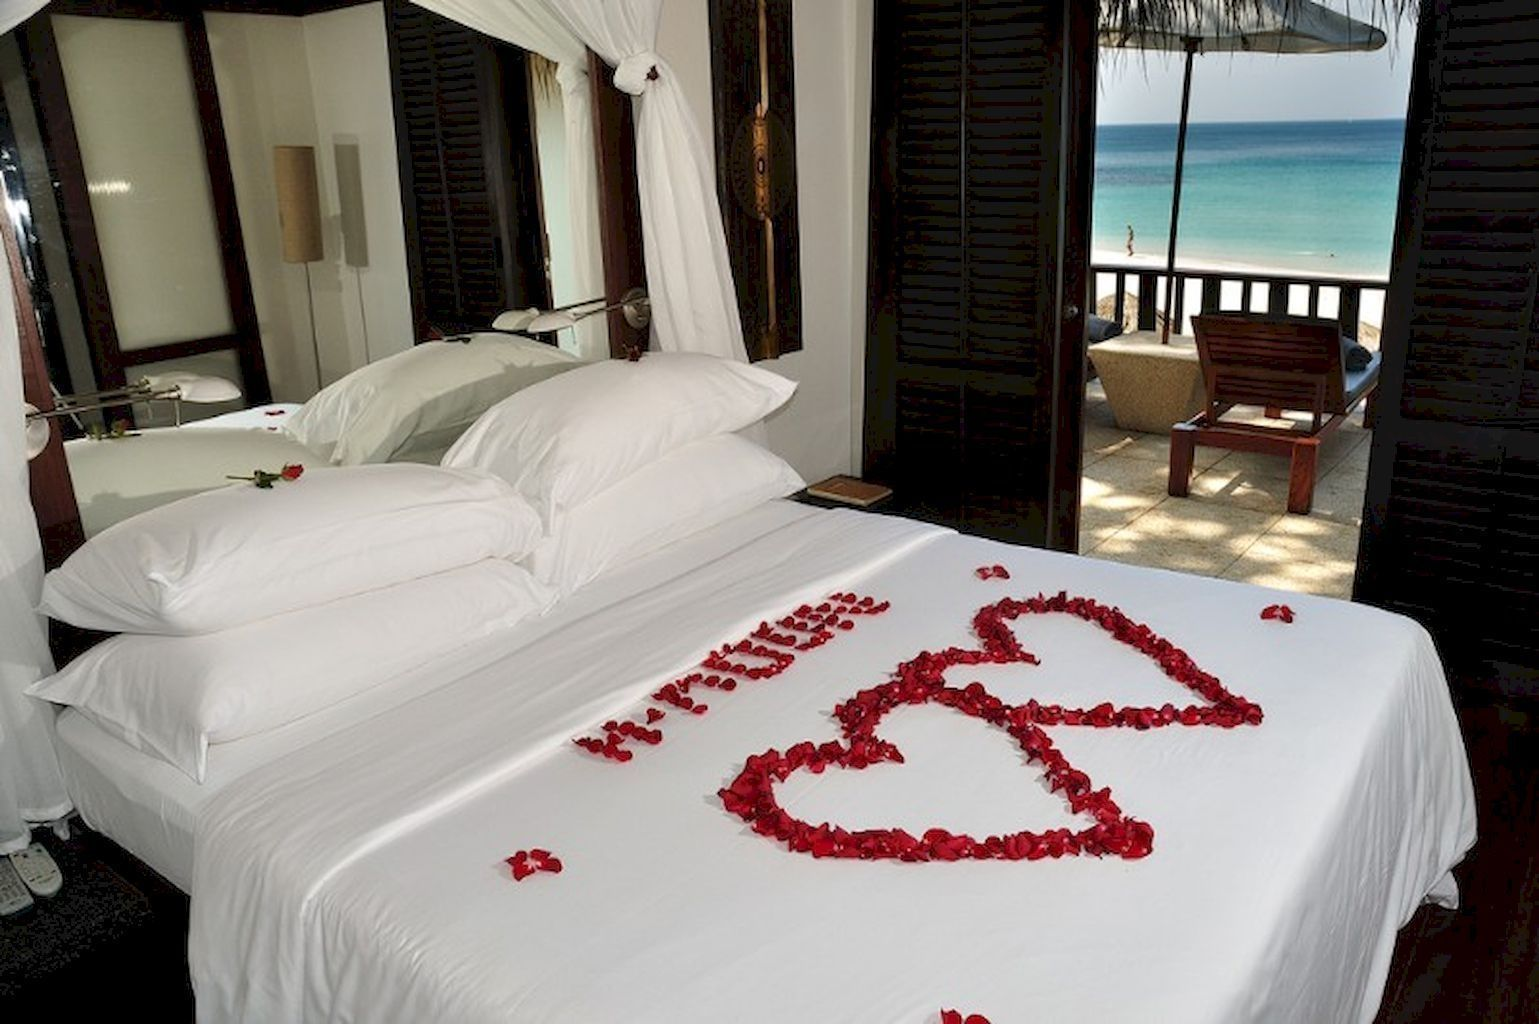 Pin By Ni3ma On Bedroom Decoration Romantic Bedroom Decor Valentines Bedroom Honeymoon Bedroom